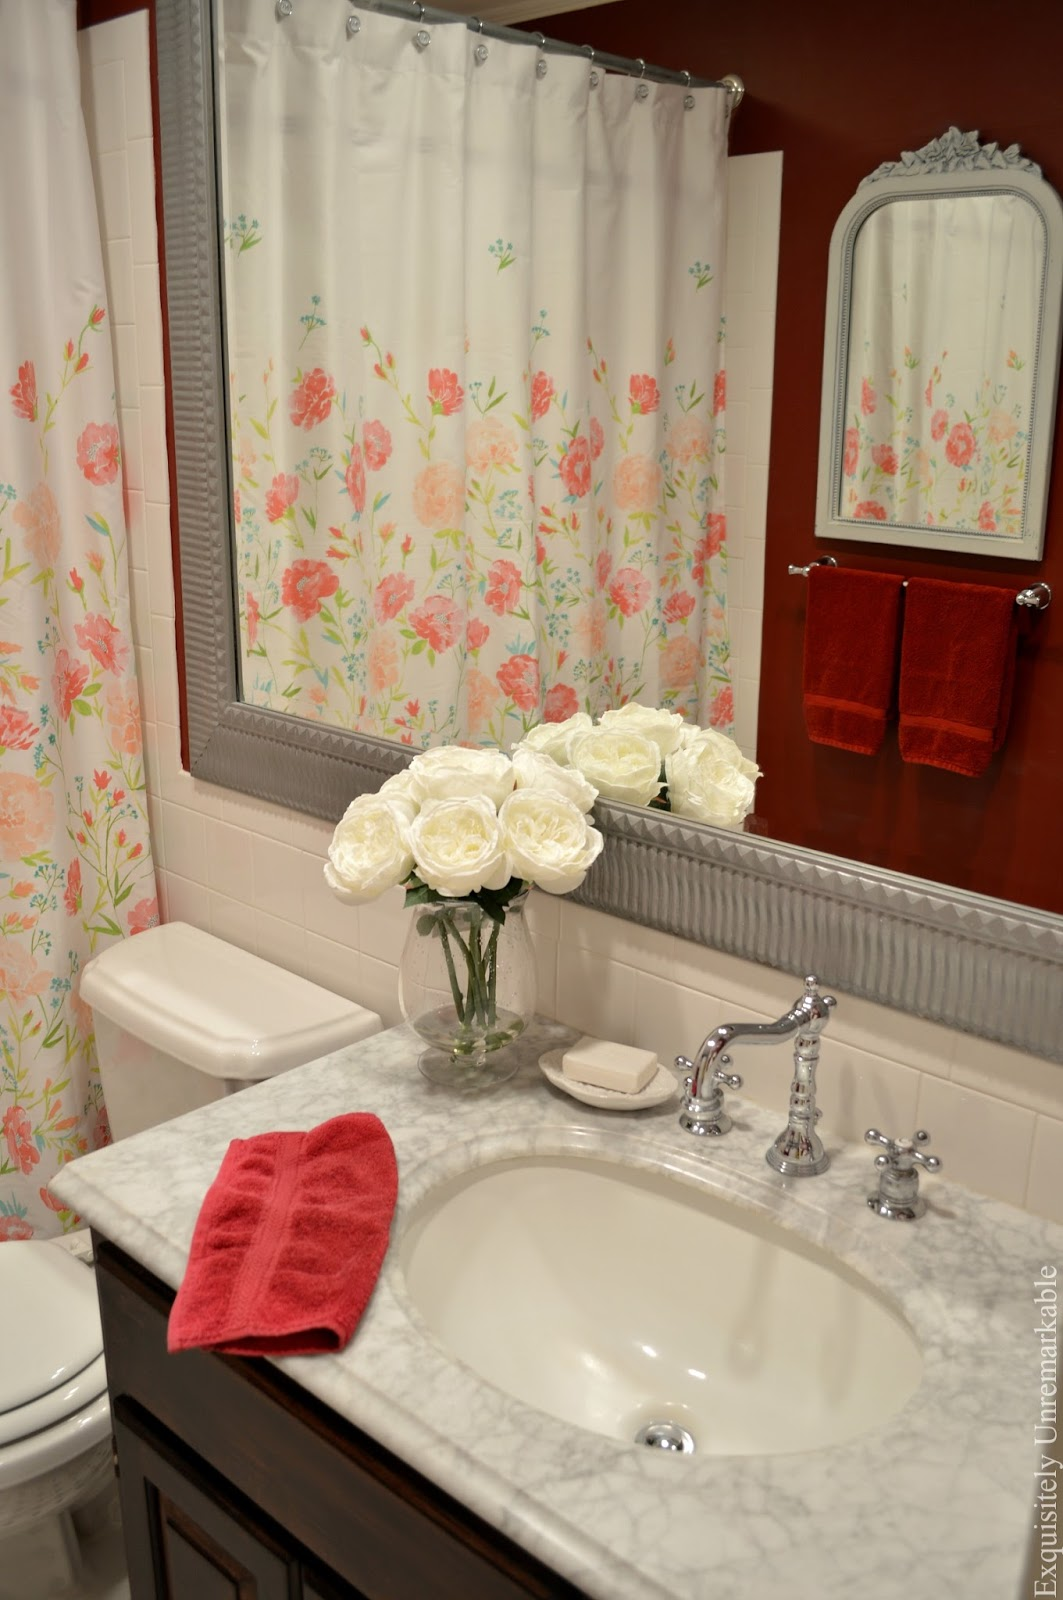 How To Update A Bathroom On A Tight Budget